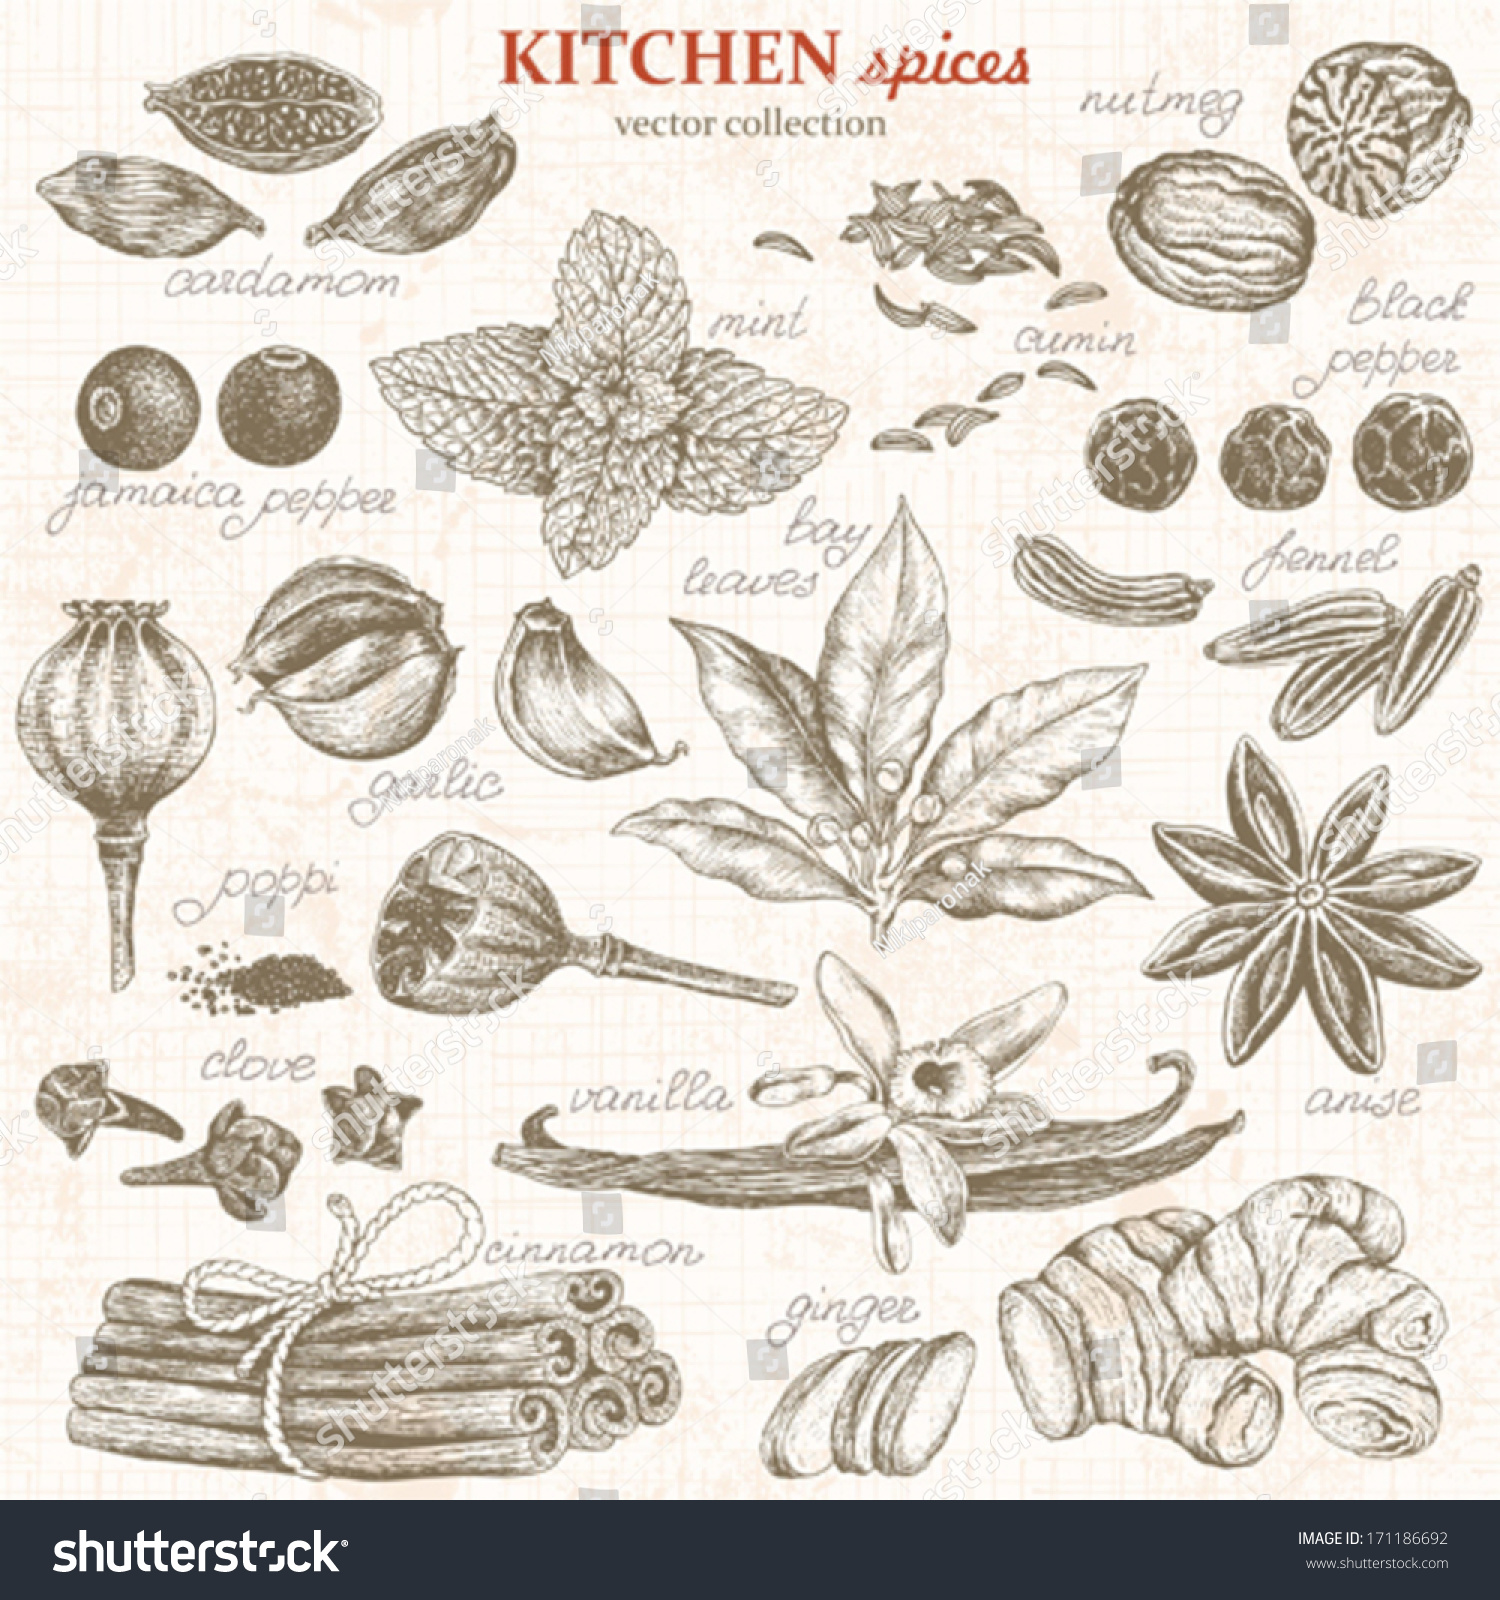 collection kitchen spices handdrawn vector illustration stock, Kitchen design